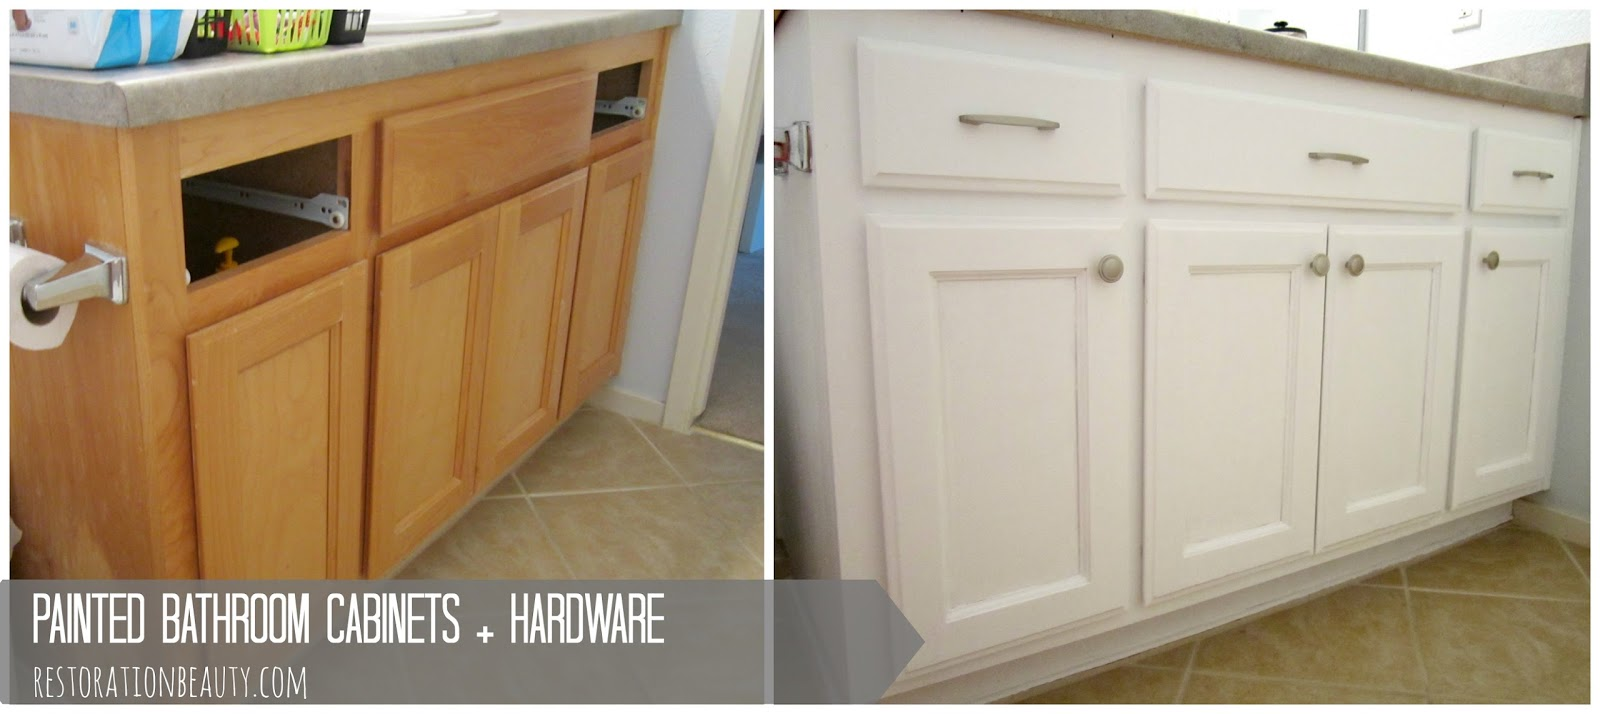 Painted Bathroom Cabinets Restoration Beauty Painted Bathroom Cabinets Hardware